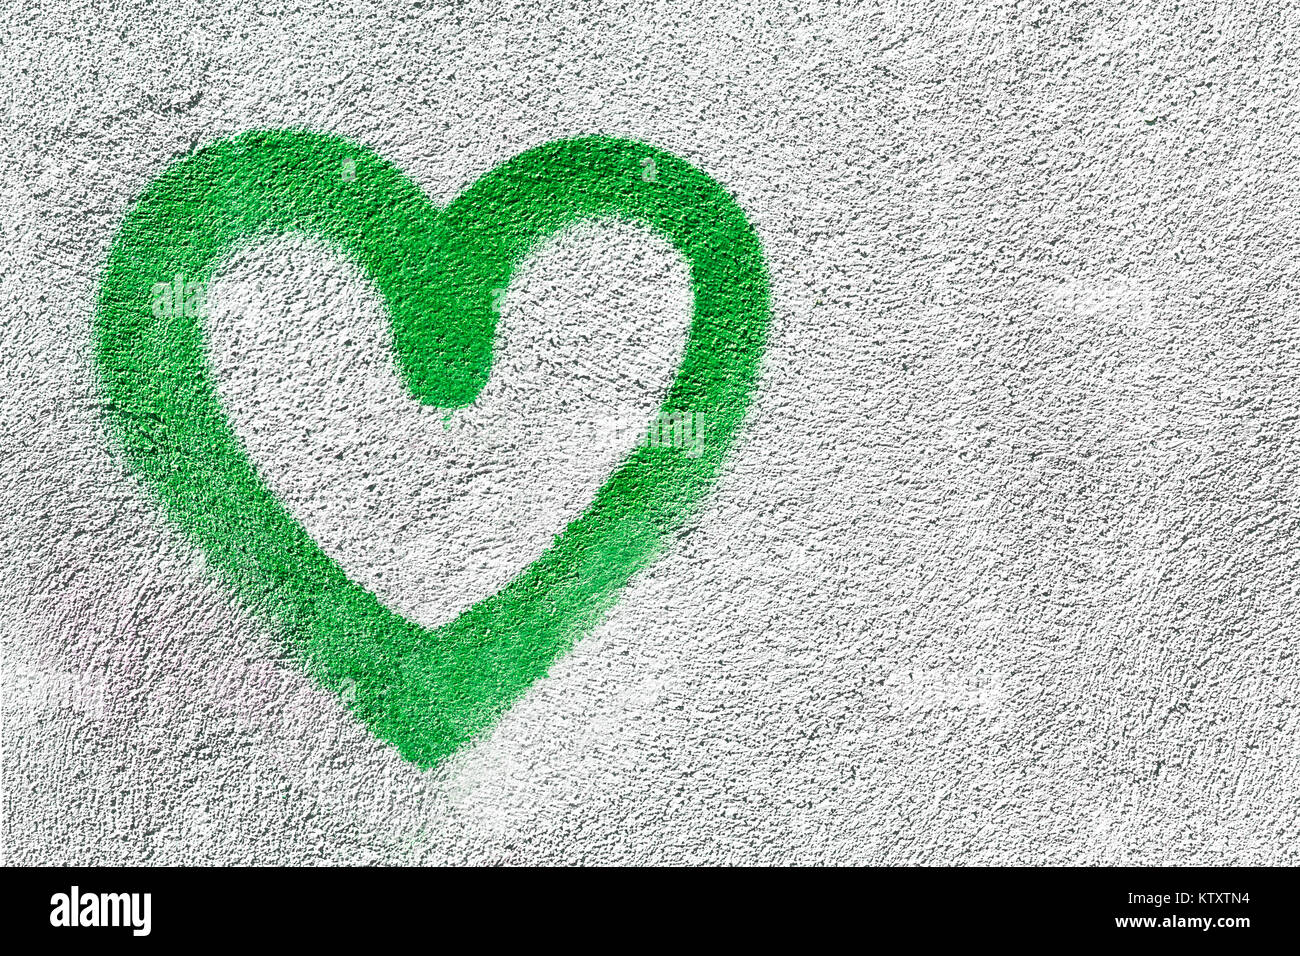 Green Heart Shaped On Wall Background Symbol Of Love Rustic It Can Be Used As A Valentines Theme Poster Wallpaper Design T Shirts And Mo